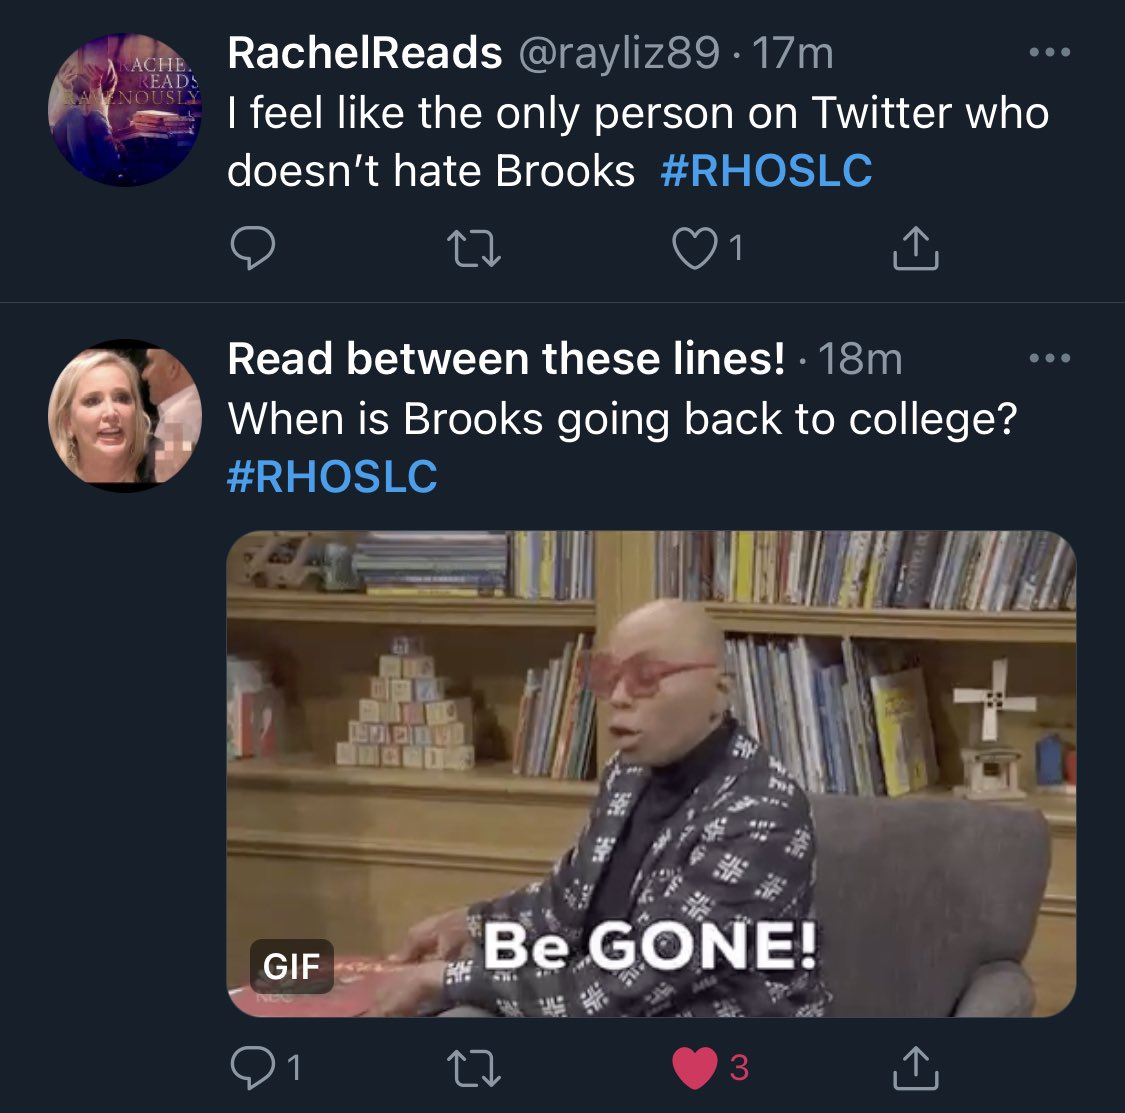 There are 2 types of #RHOSLC fans.